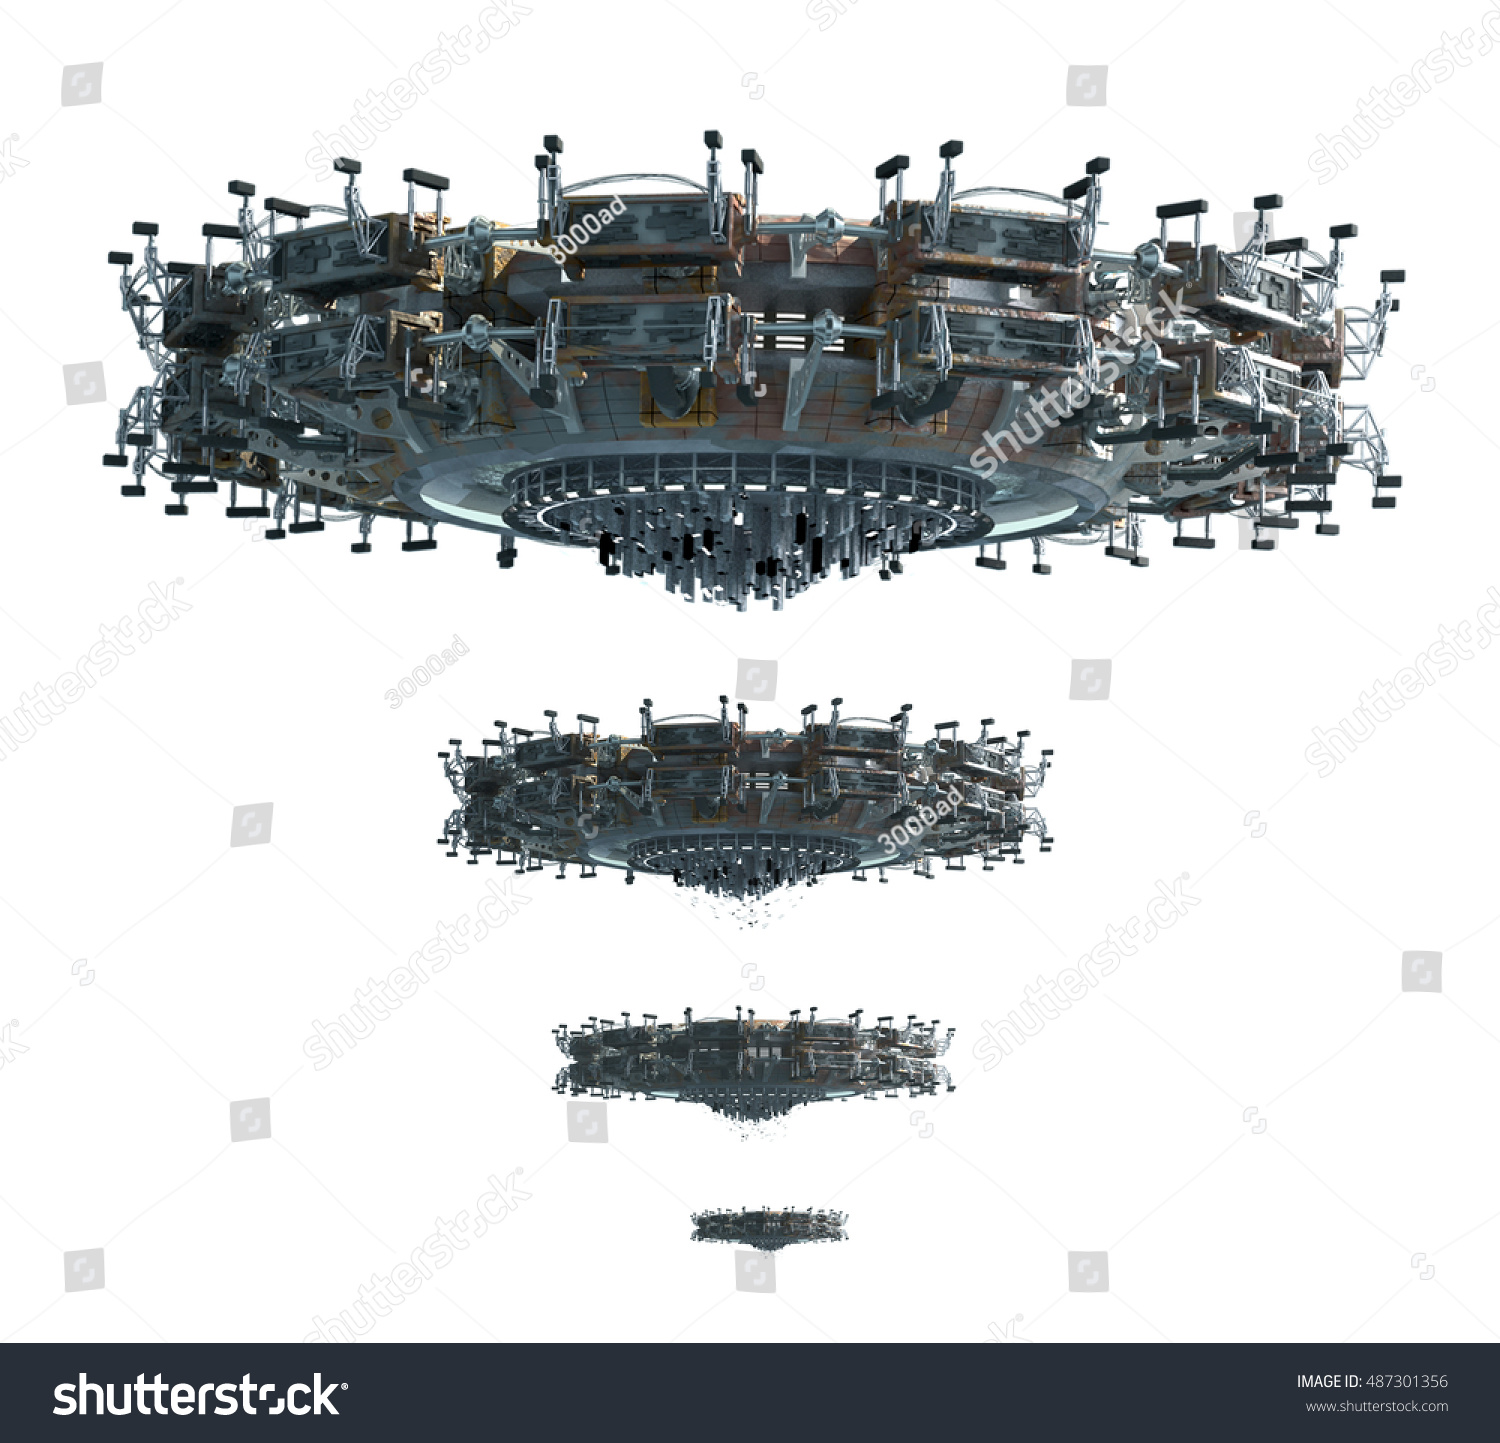 3 D Illustrations Ufo Four Images Adjusted Stock Illustration Engine Diagram 3d Of A In For Perspective Science Fiction Backgrounds